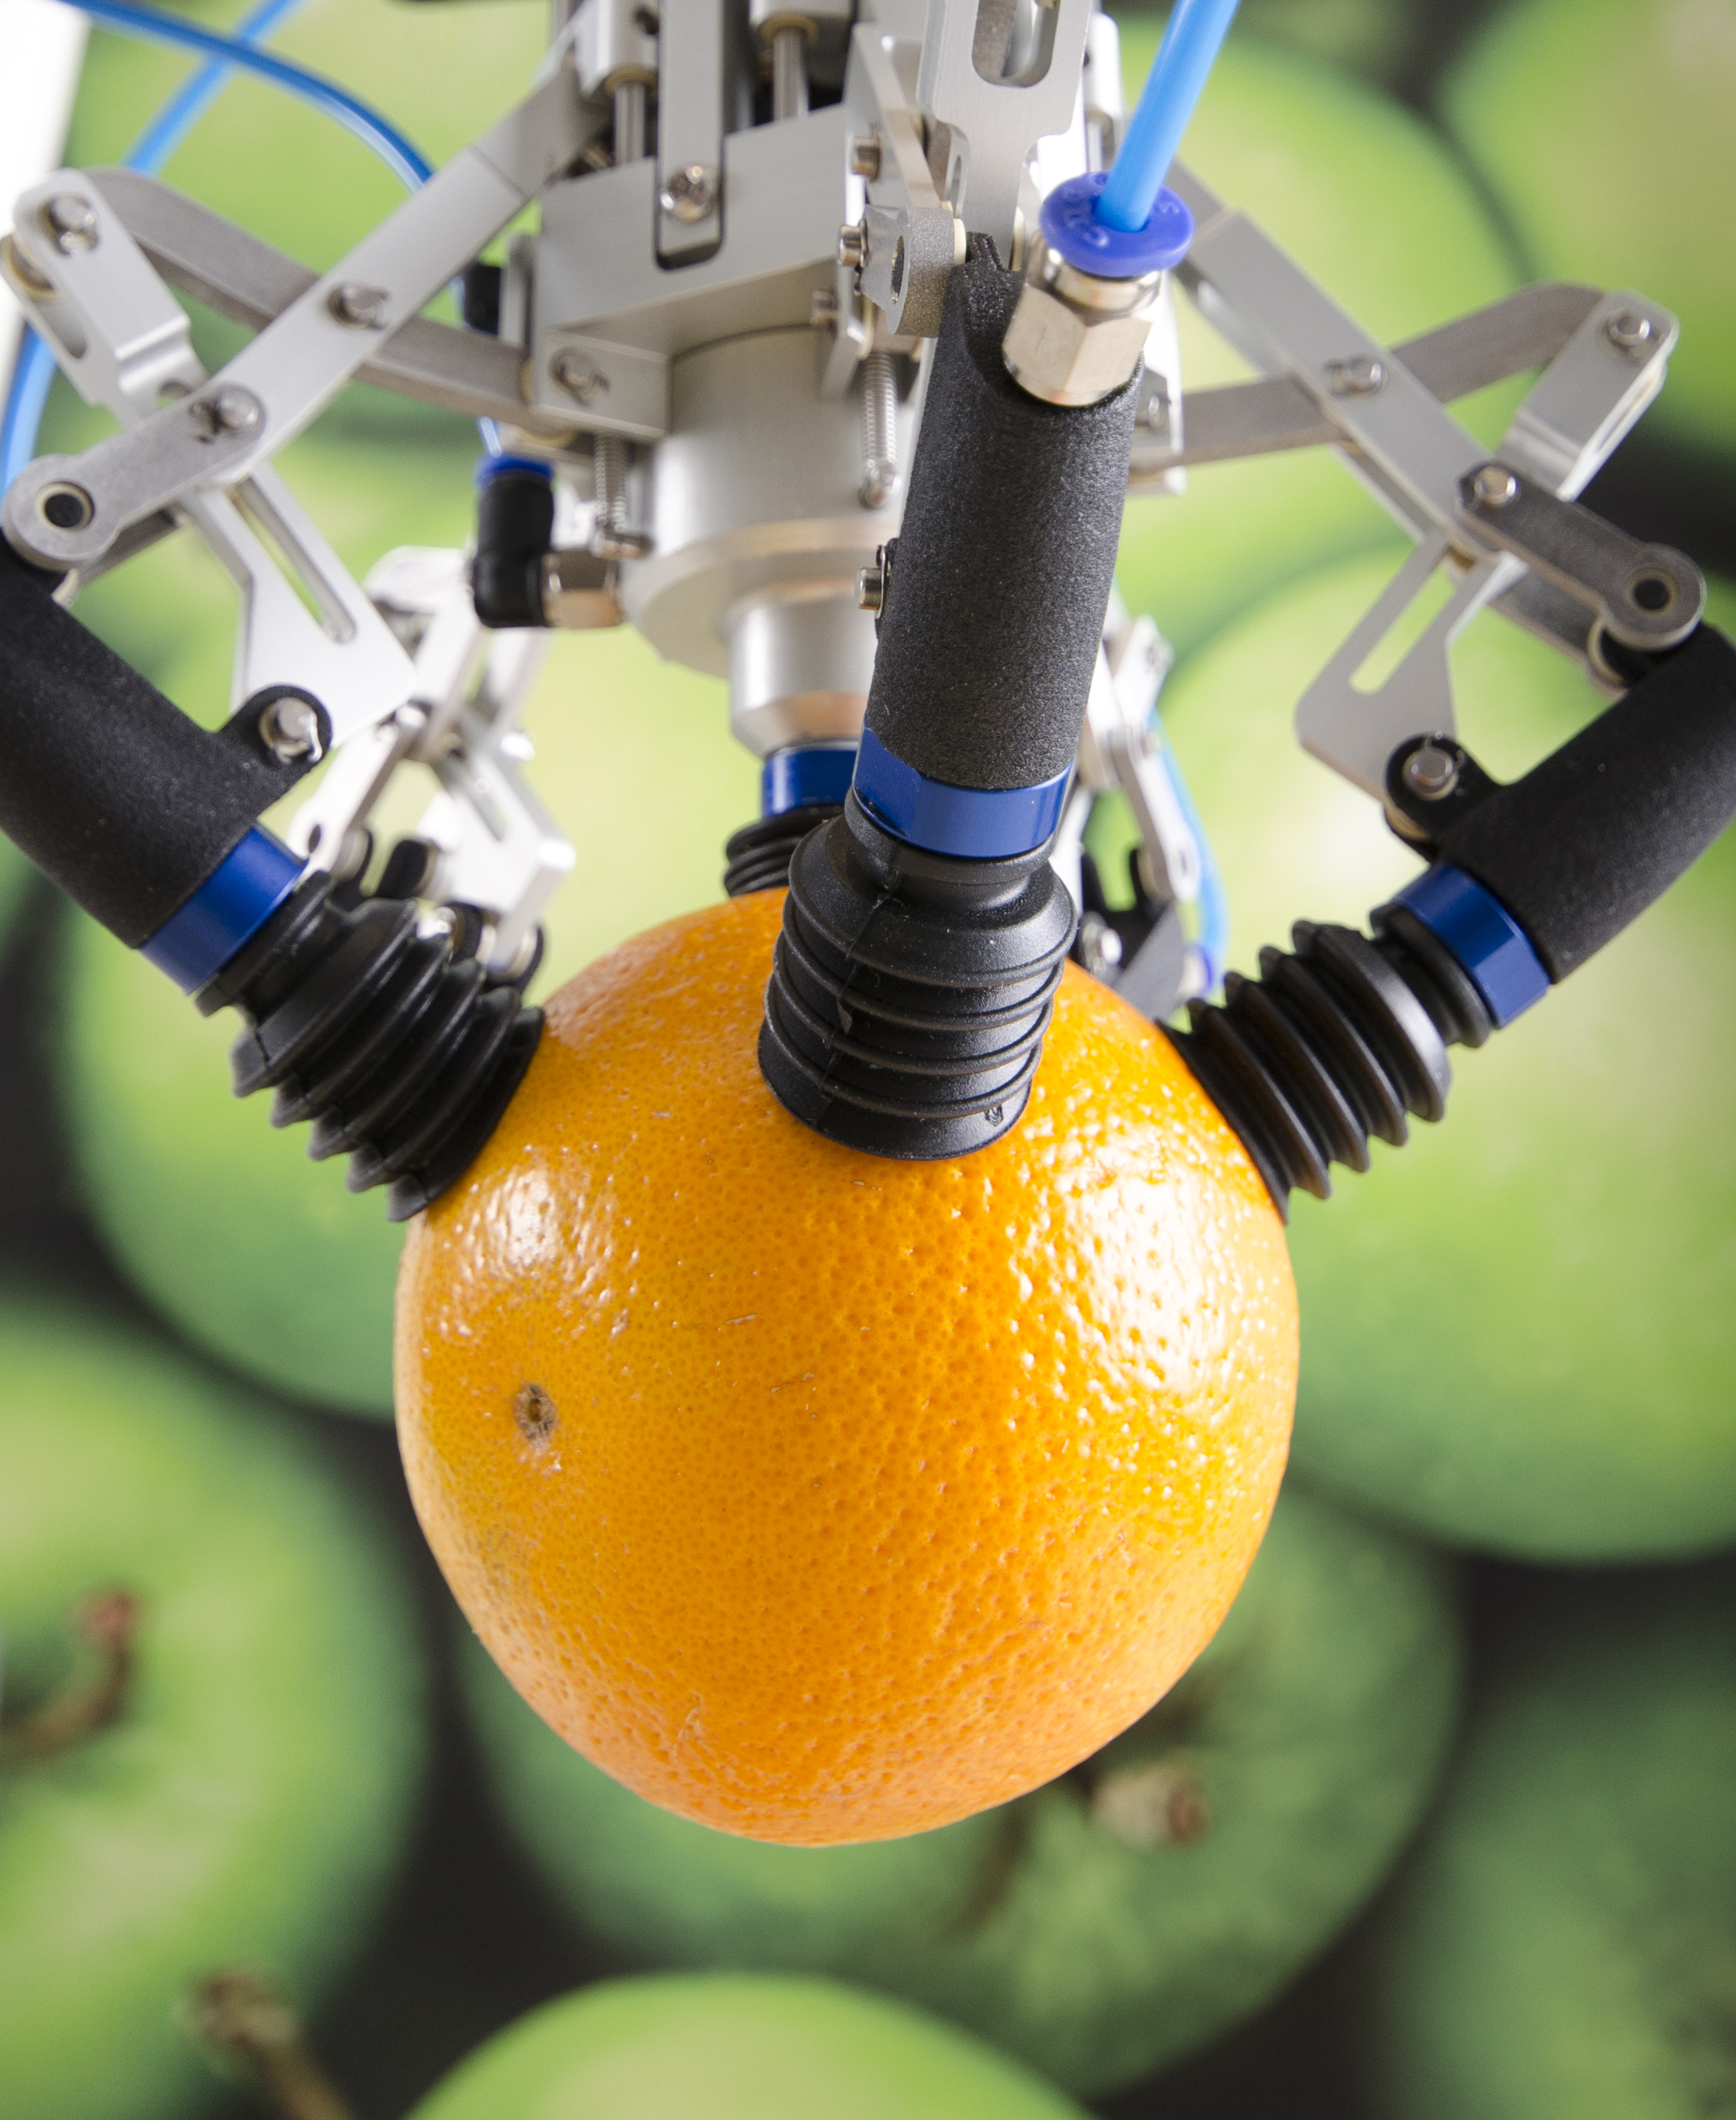 Fruit Picking Robot Solves Automation Challenge The